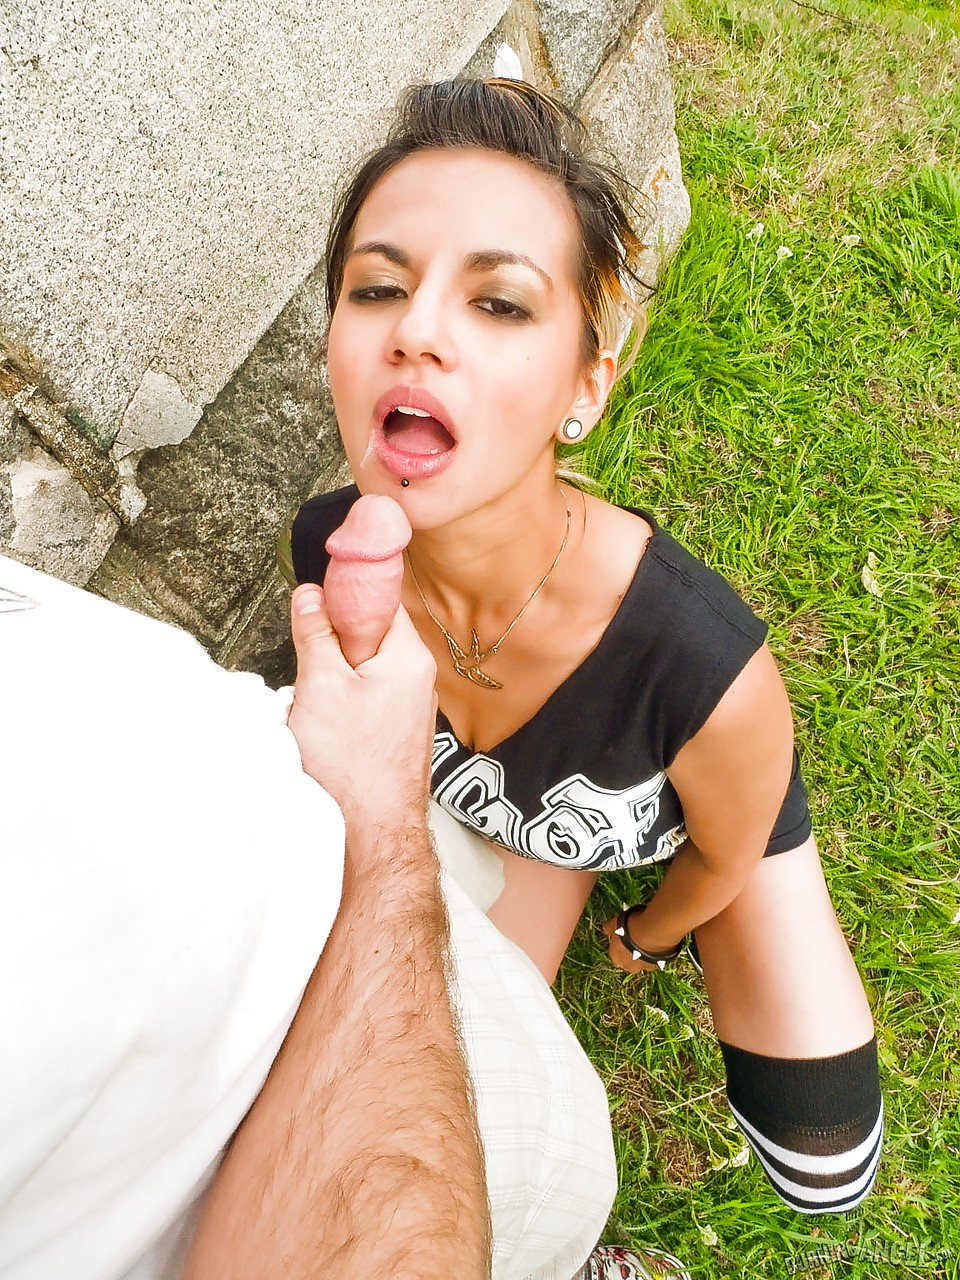 Blowjob gets a mouthful have